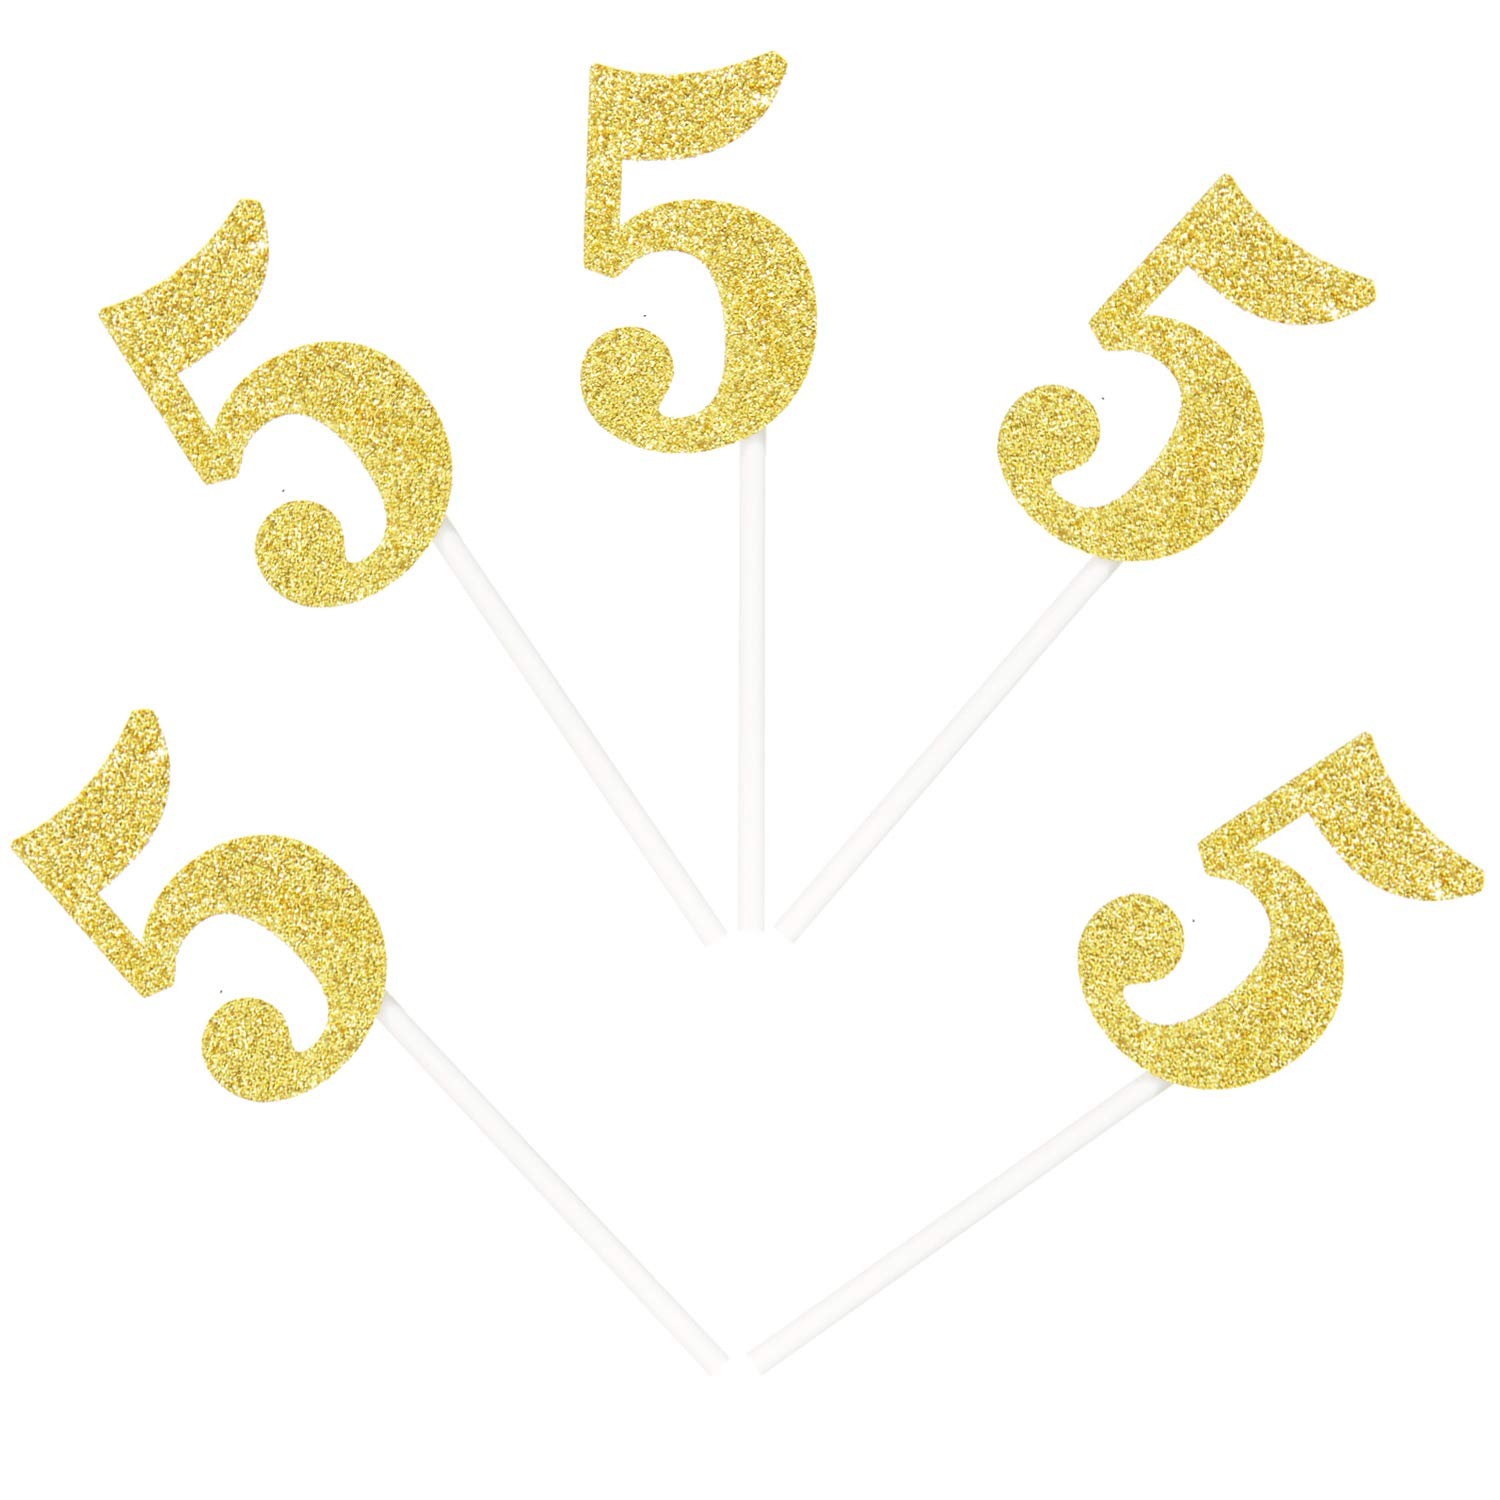 Ercadio Number 5 Cupcake Daily bargain sale Toppers Gold Glitter Cupca 5th Birthday National uniform free shipping